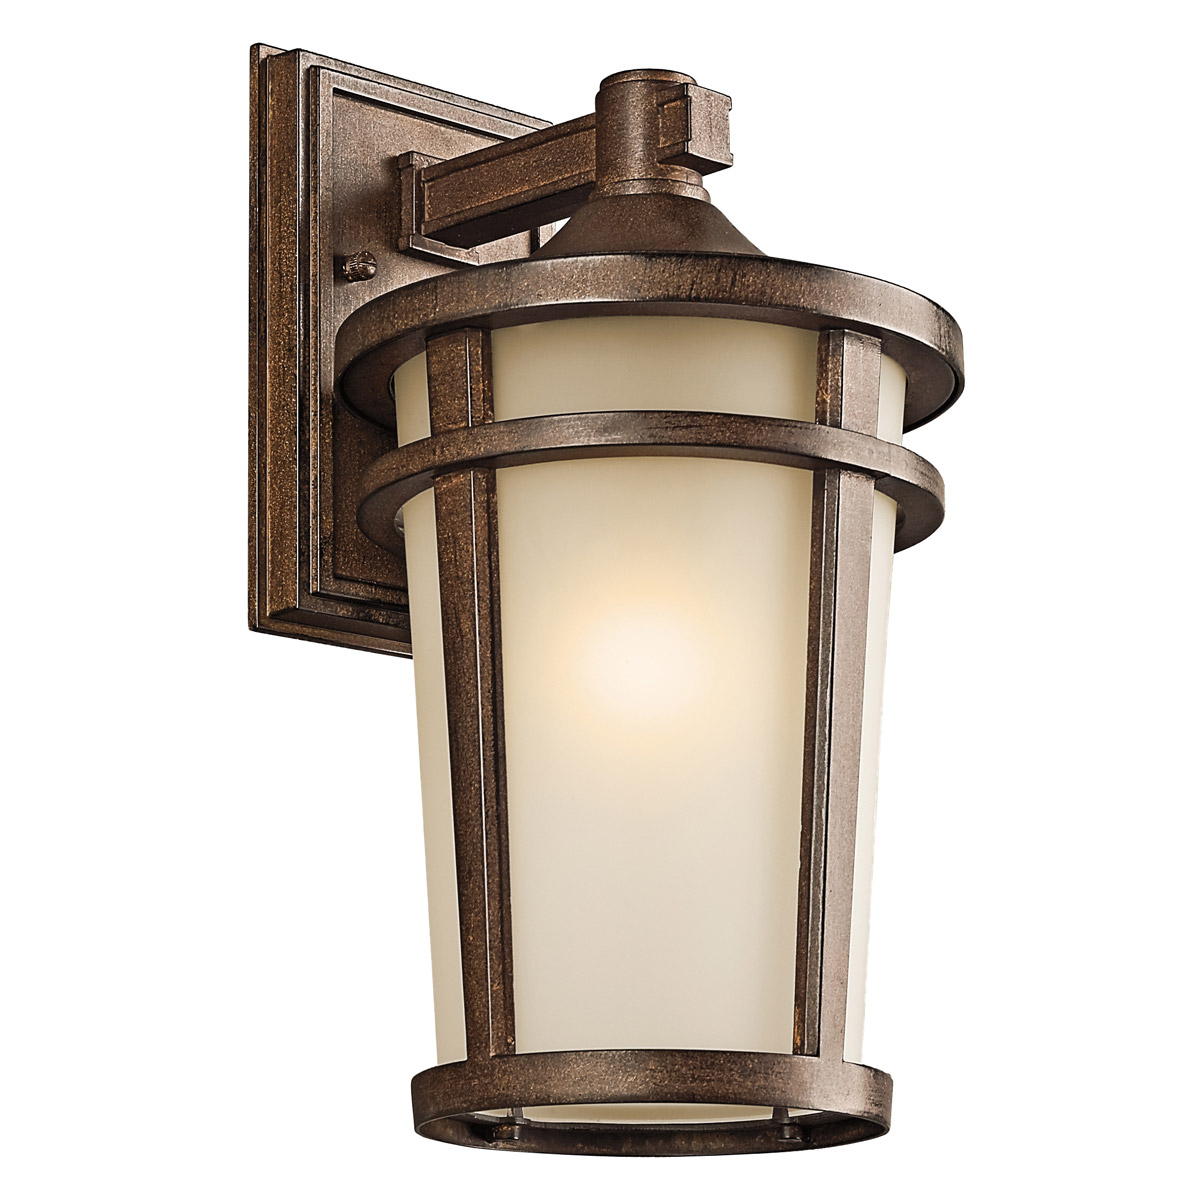 exterior wall mount light fixtures photo - 6